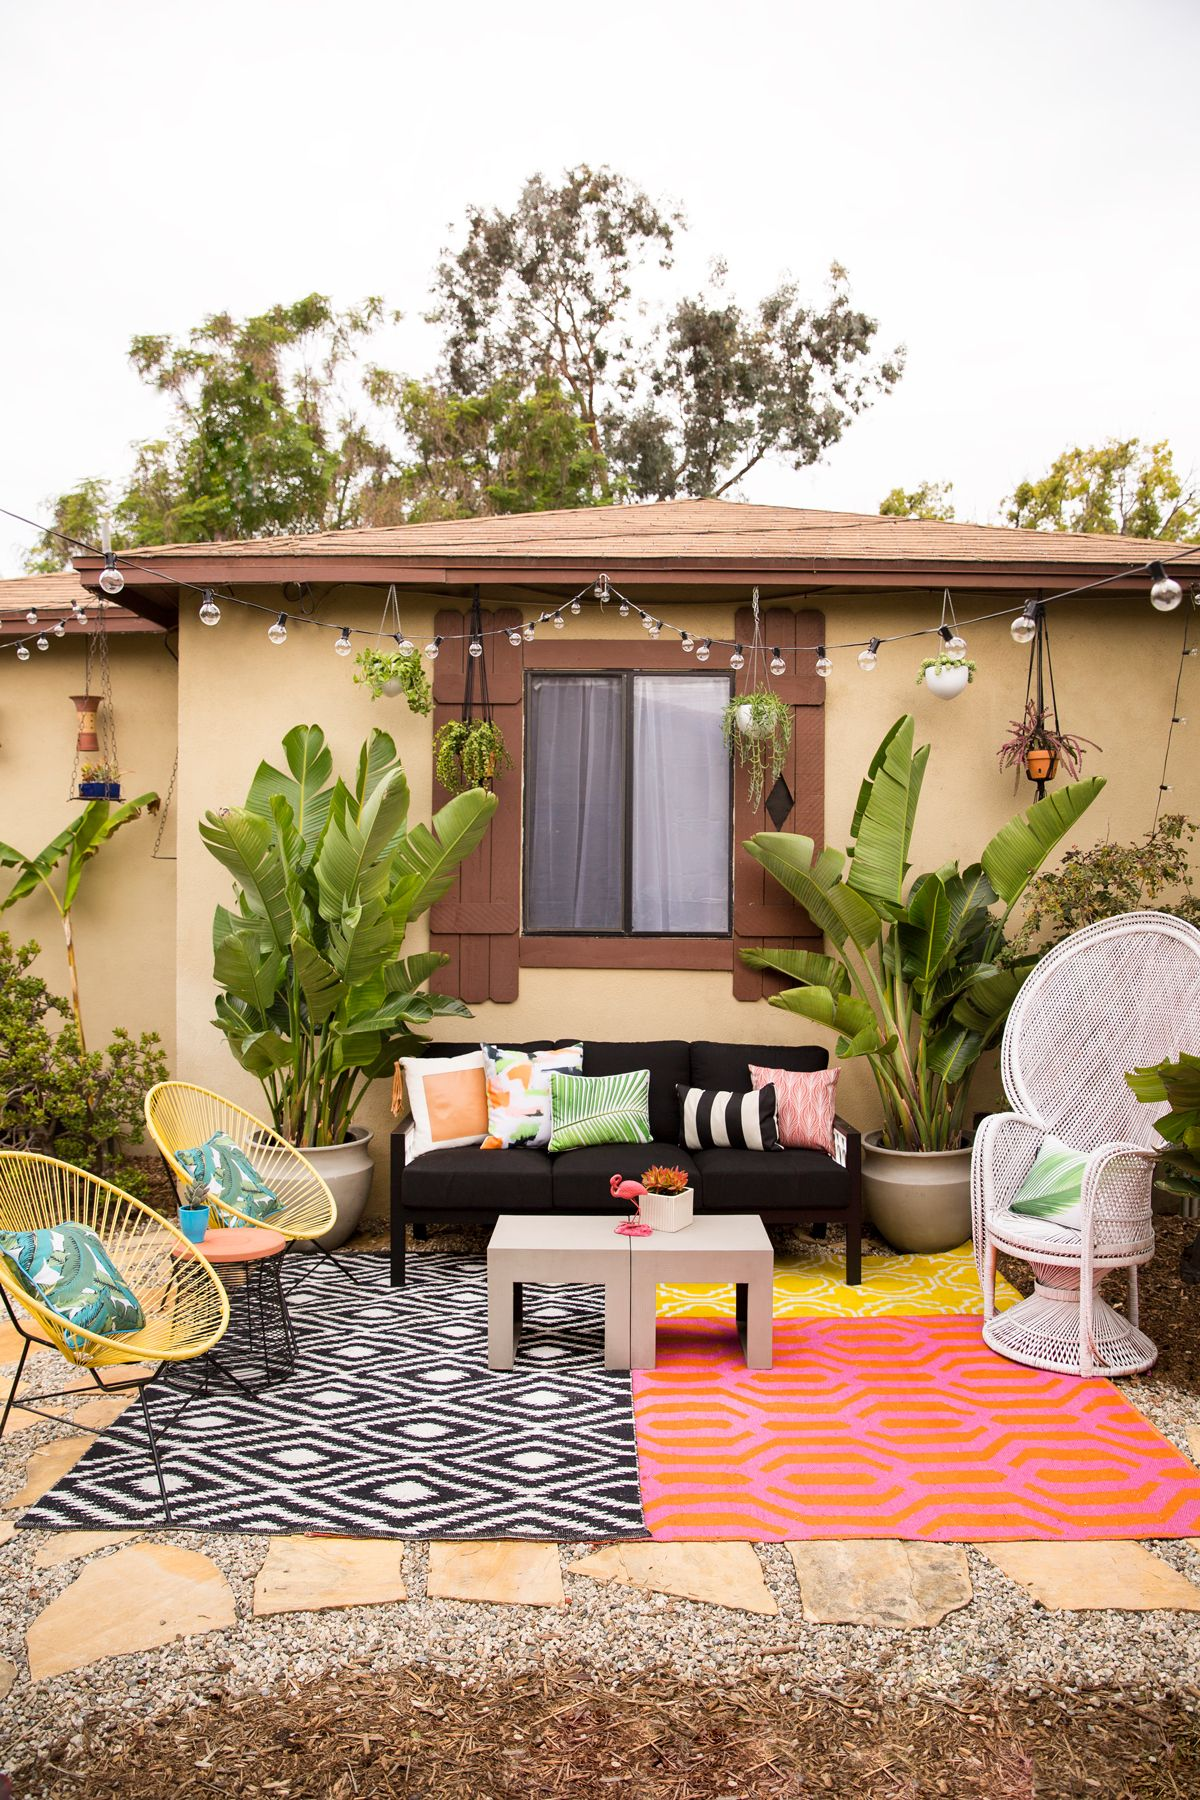 LA boasts year-round sun and Woodnote Photography took advantage of it with her new backyard retreat! See the full reveal of our pieces by clicking through!